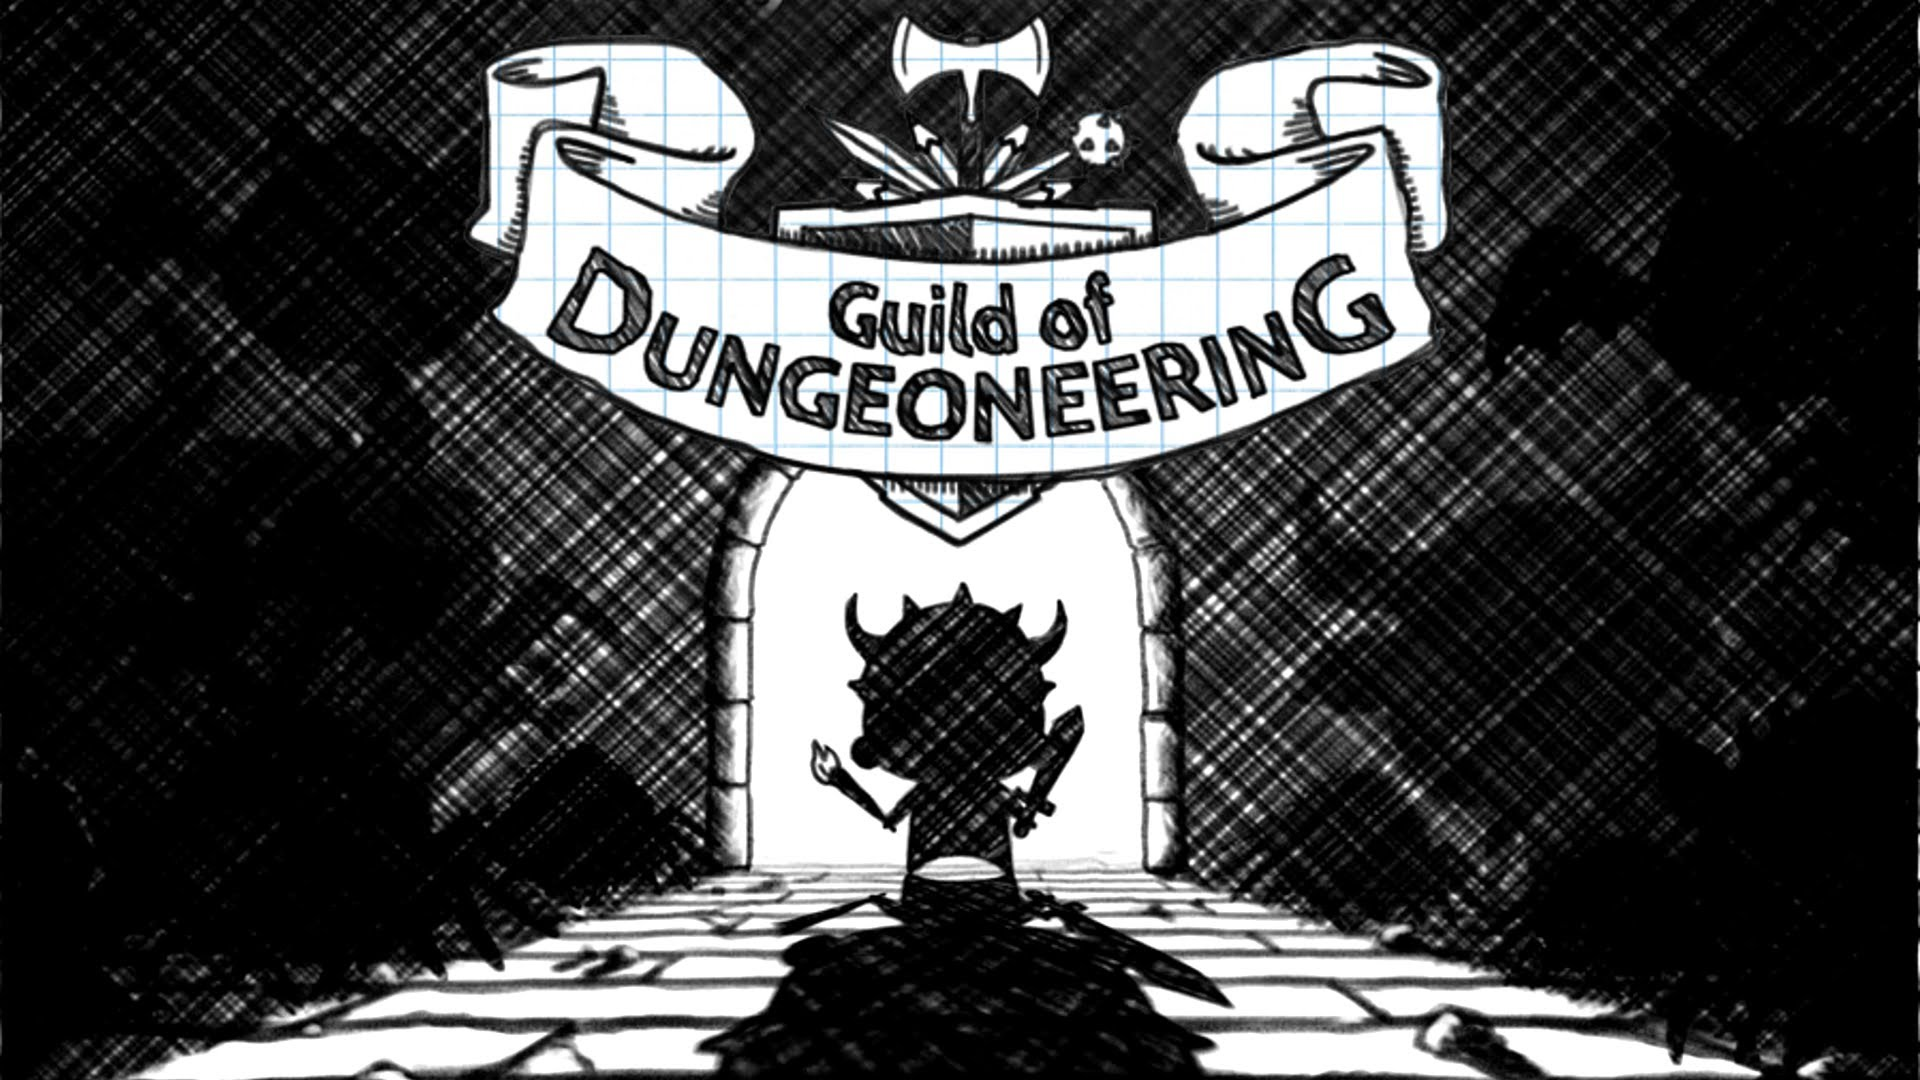 Guild Of Dungeoneering Backgrounds, Compatible - PC, Mobile, Gadgets| 1920x1080 px